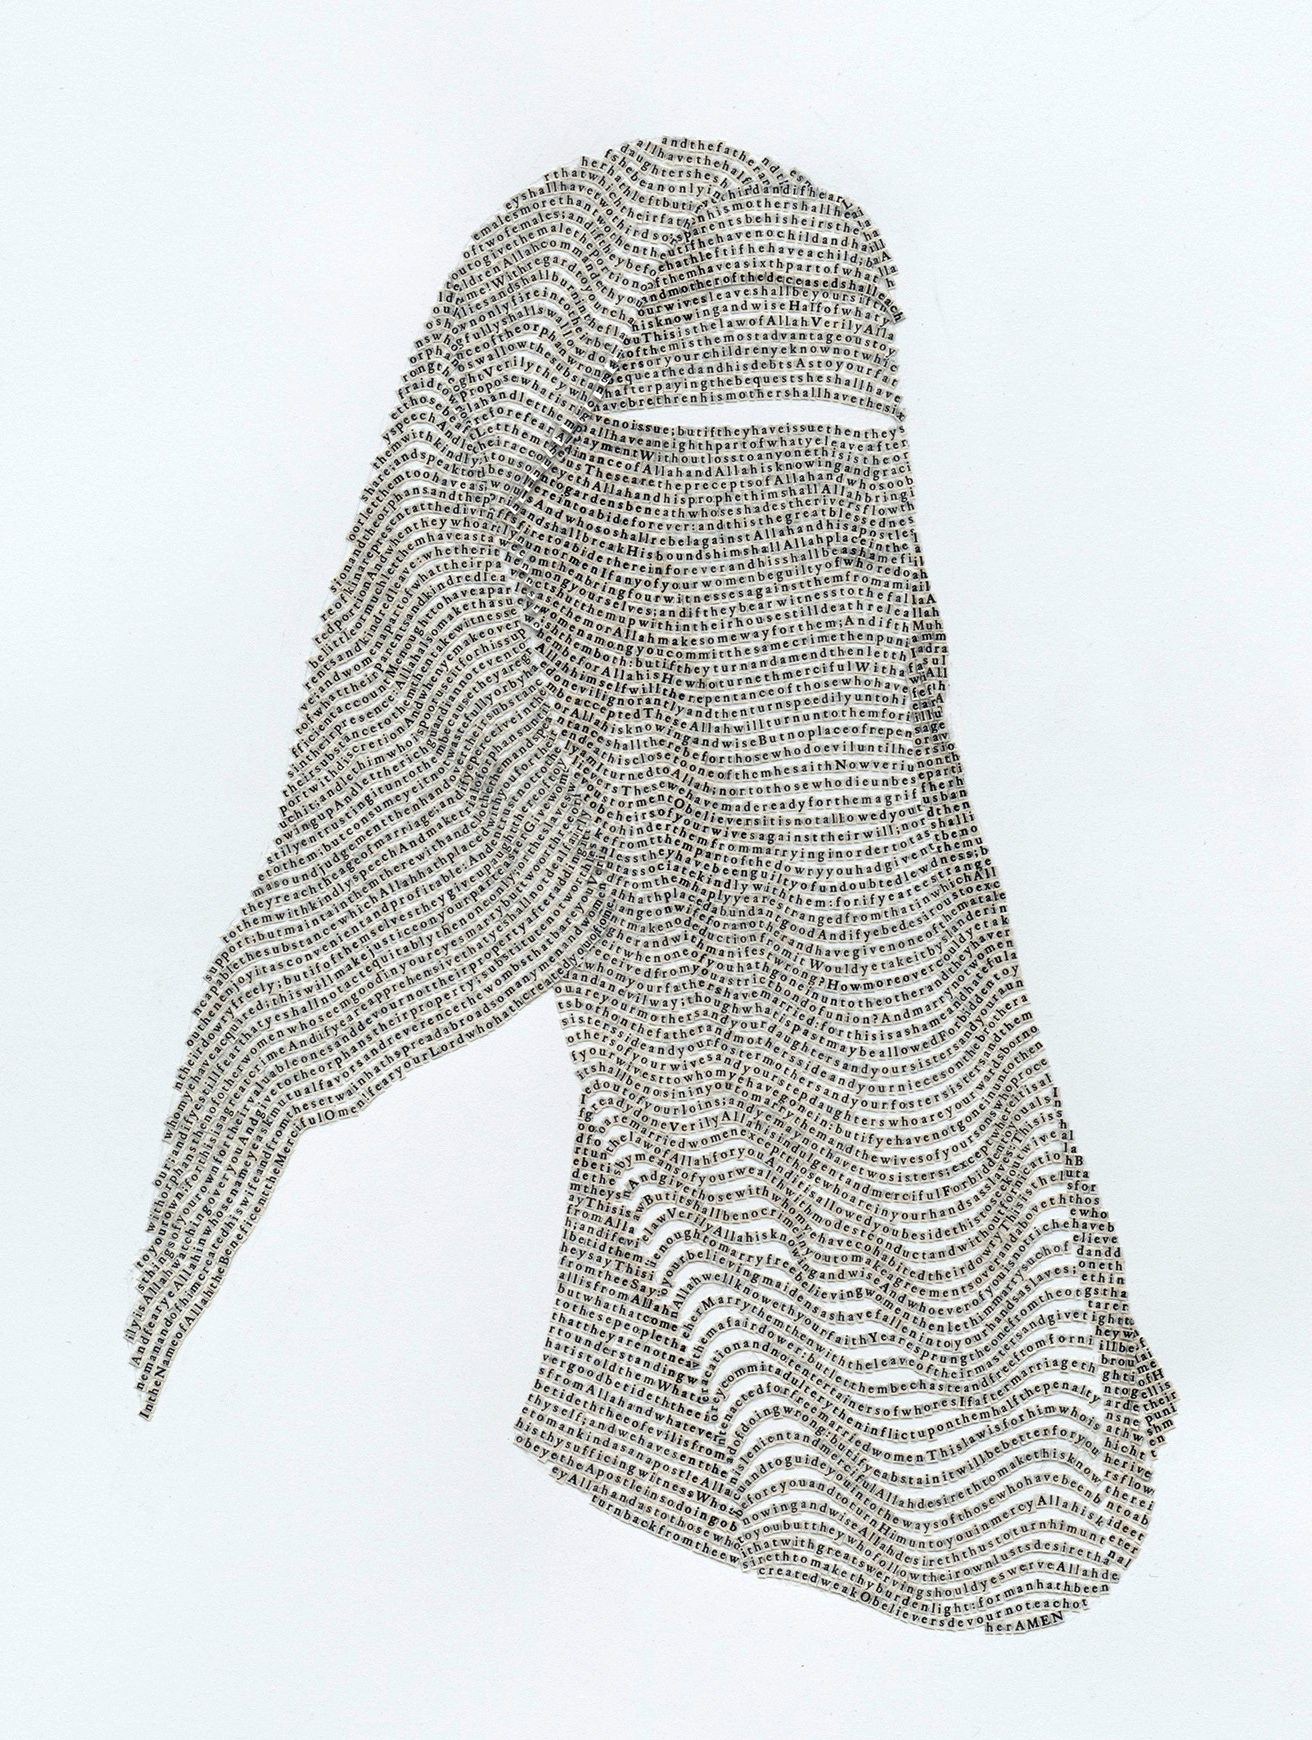 Niqab No. 1 (detail).jpg